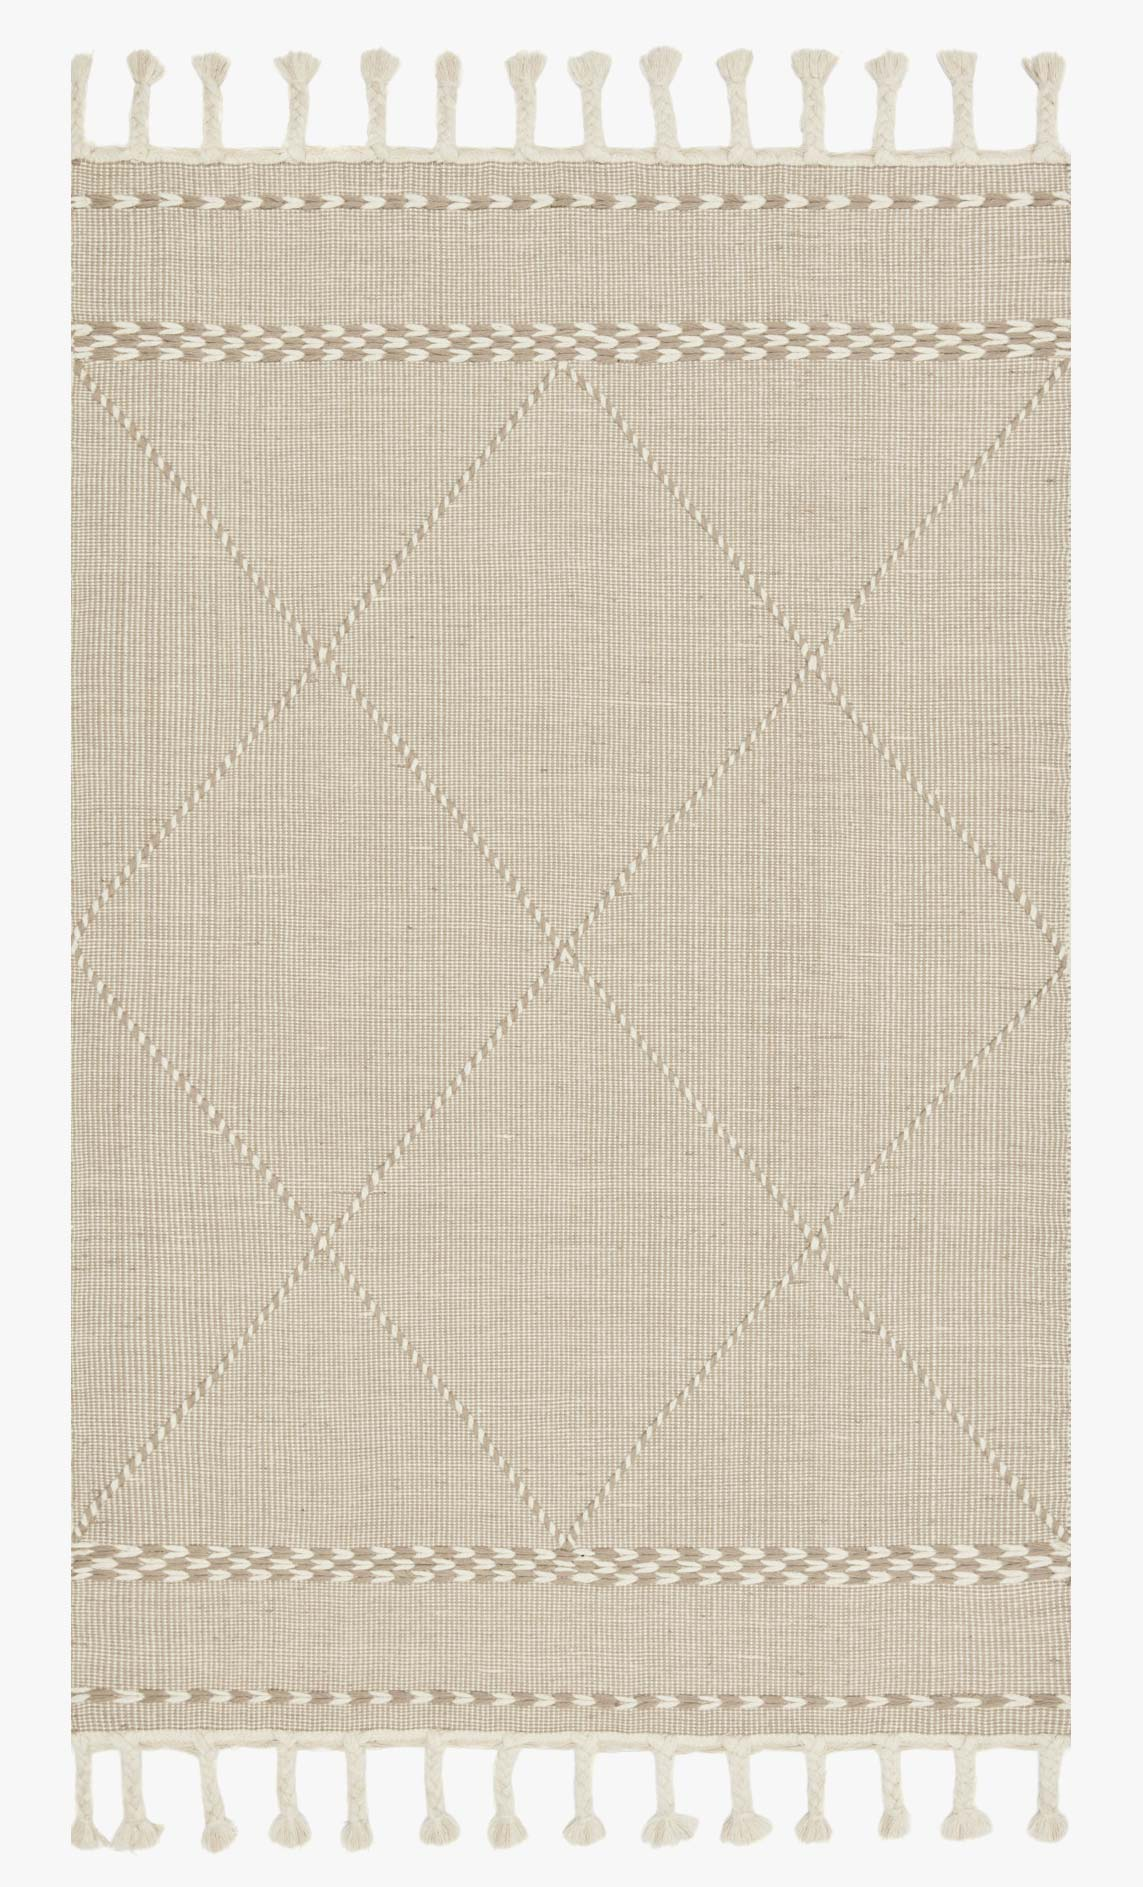 "Loloi II SAWYER SAW-03 Sand Area Rug (7'-6"" x 9'-6"")"